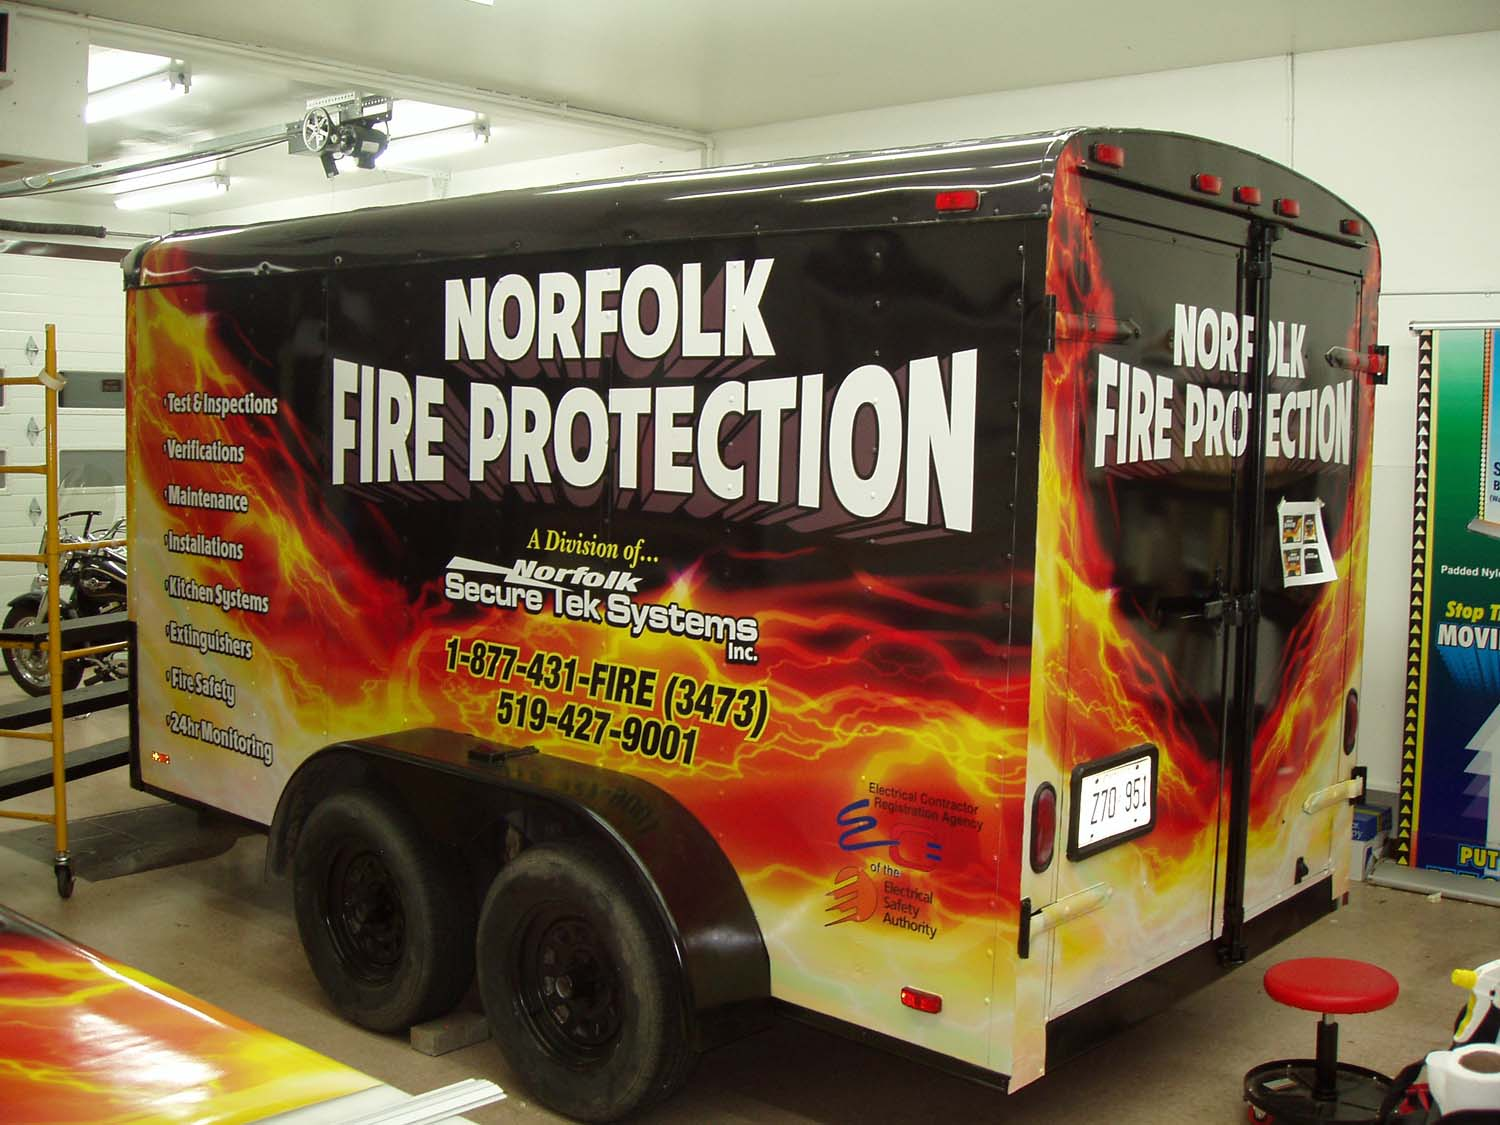 Norfolk Fire Protection.jpg